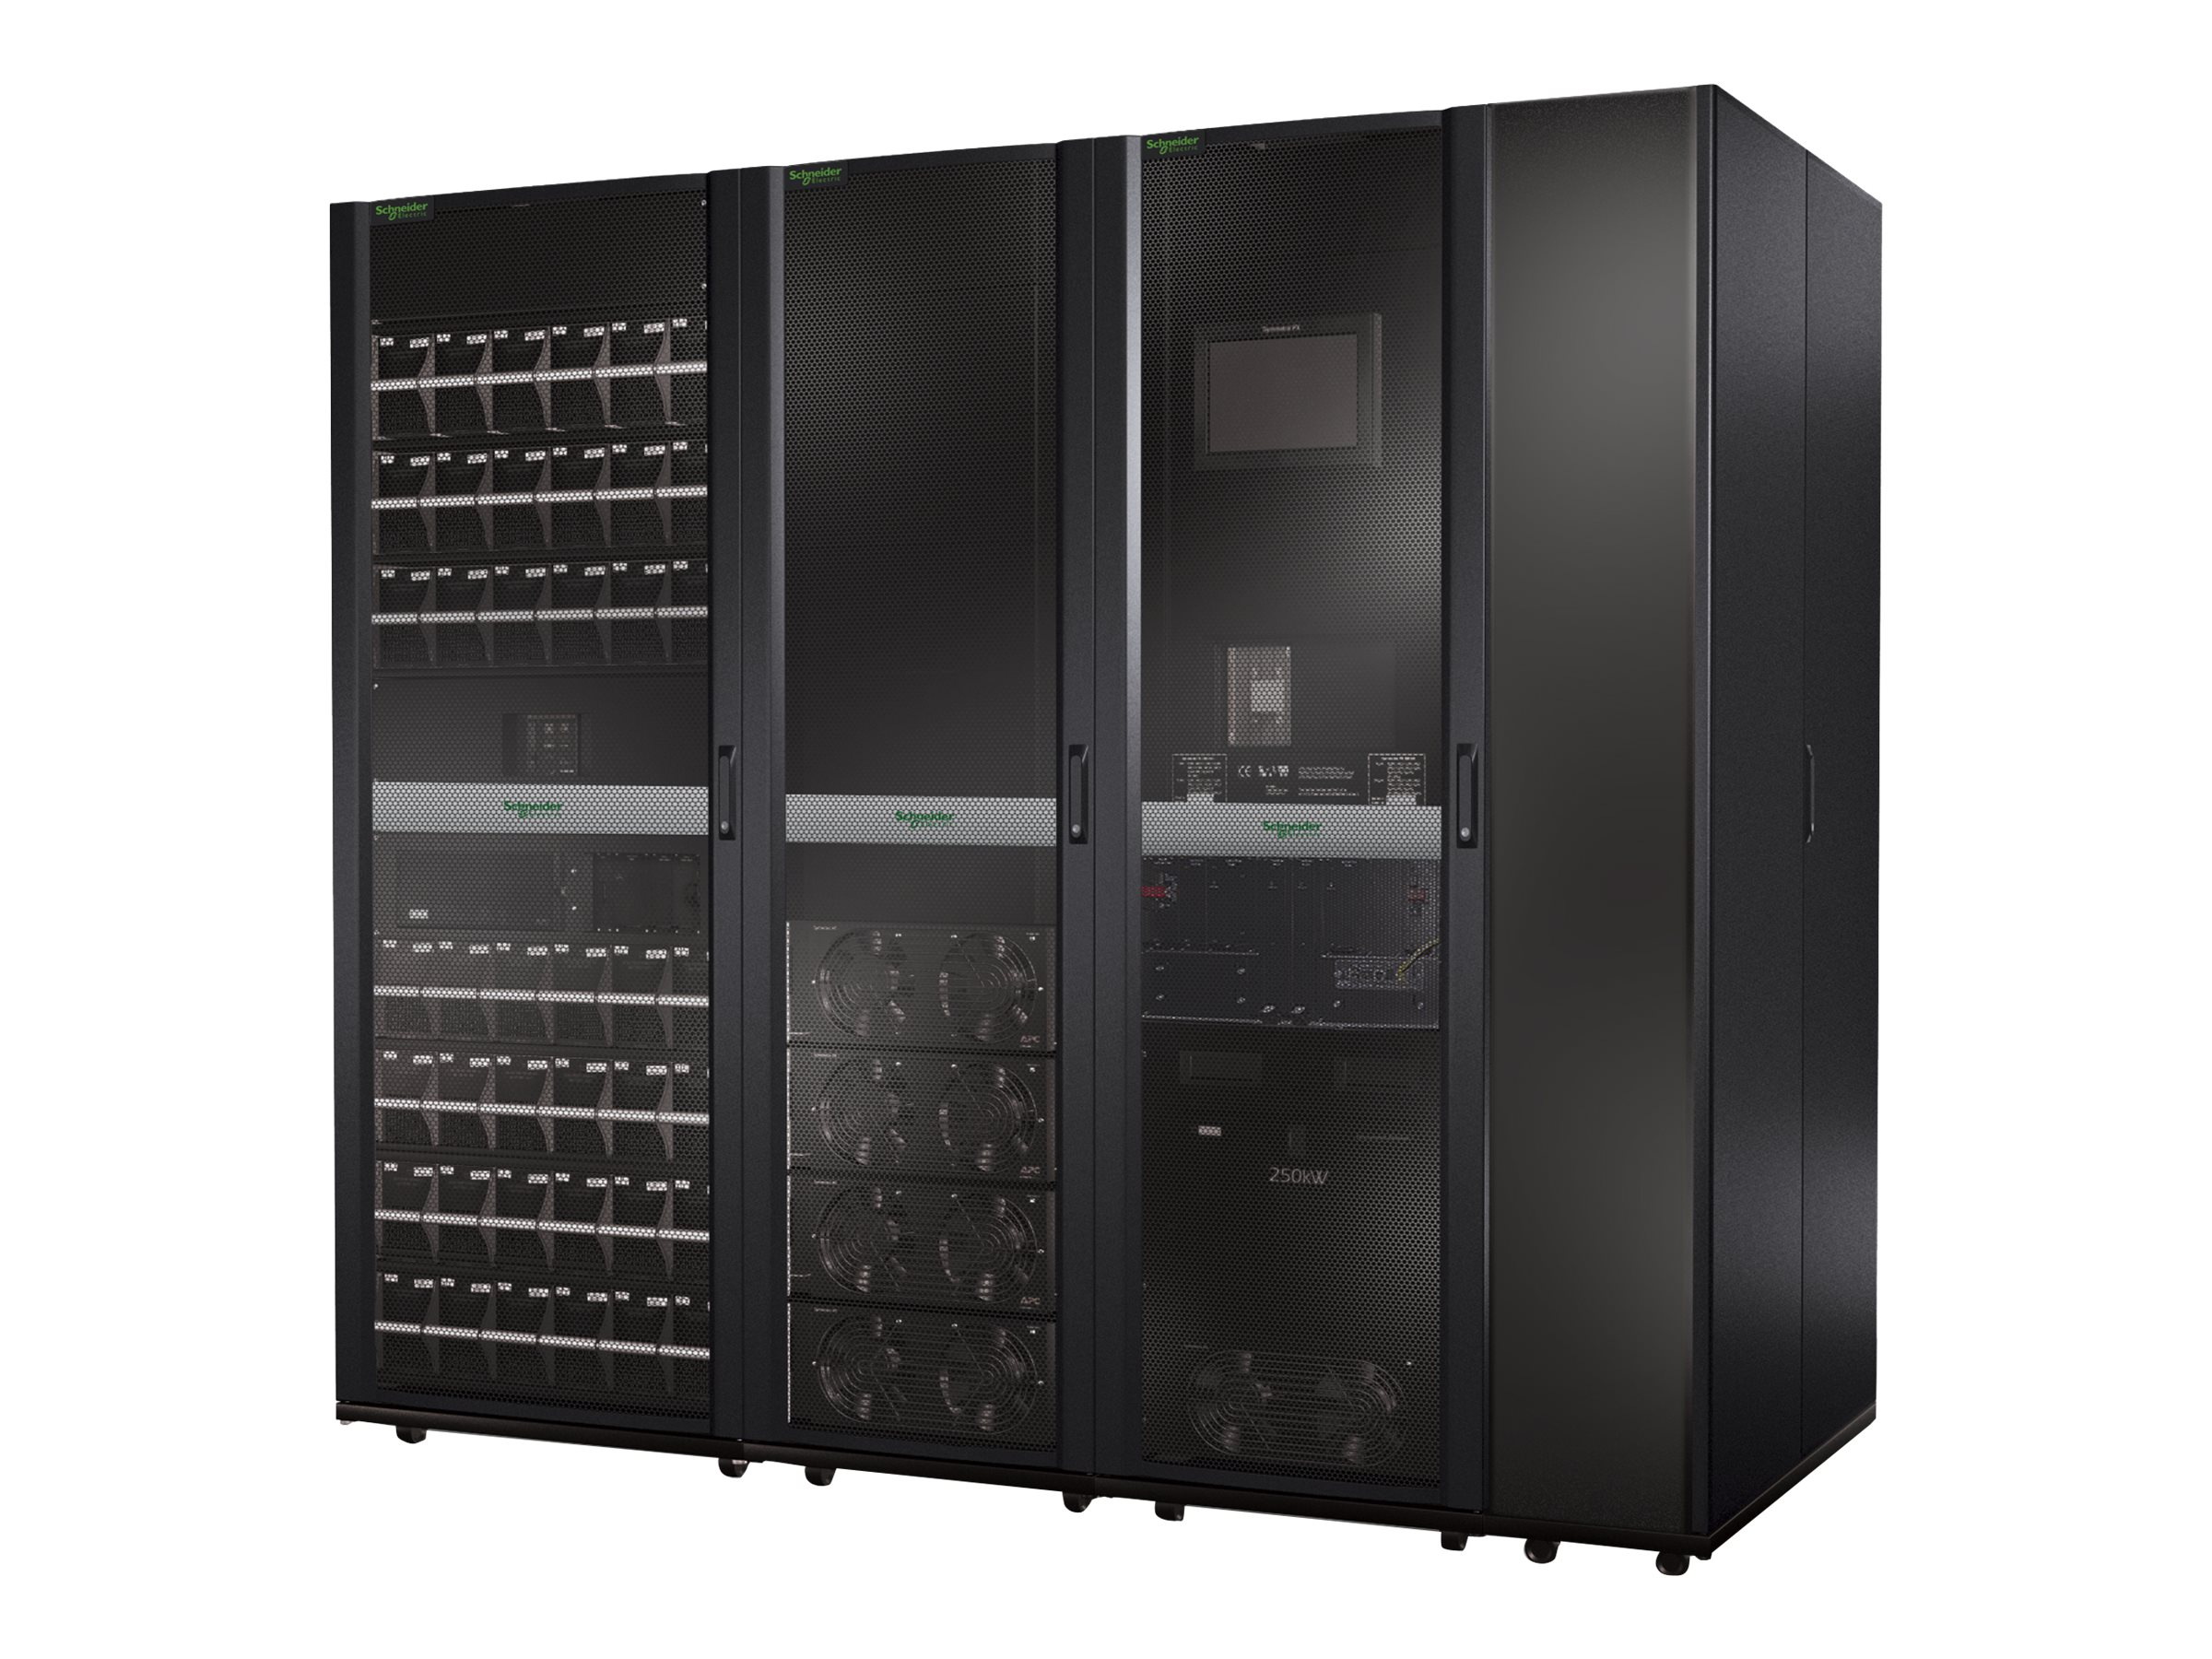 APC Symmetra PX 100kW Scalable to 250kW with Right-mounted Maintenance Bypass and Distribution, SY100K250DR-PD, 10124496, Battery Backup/UPS